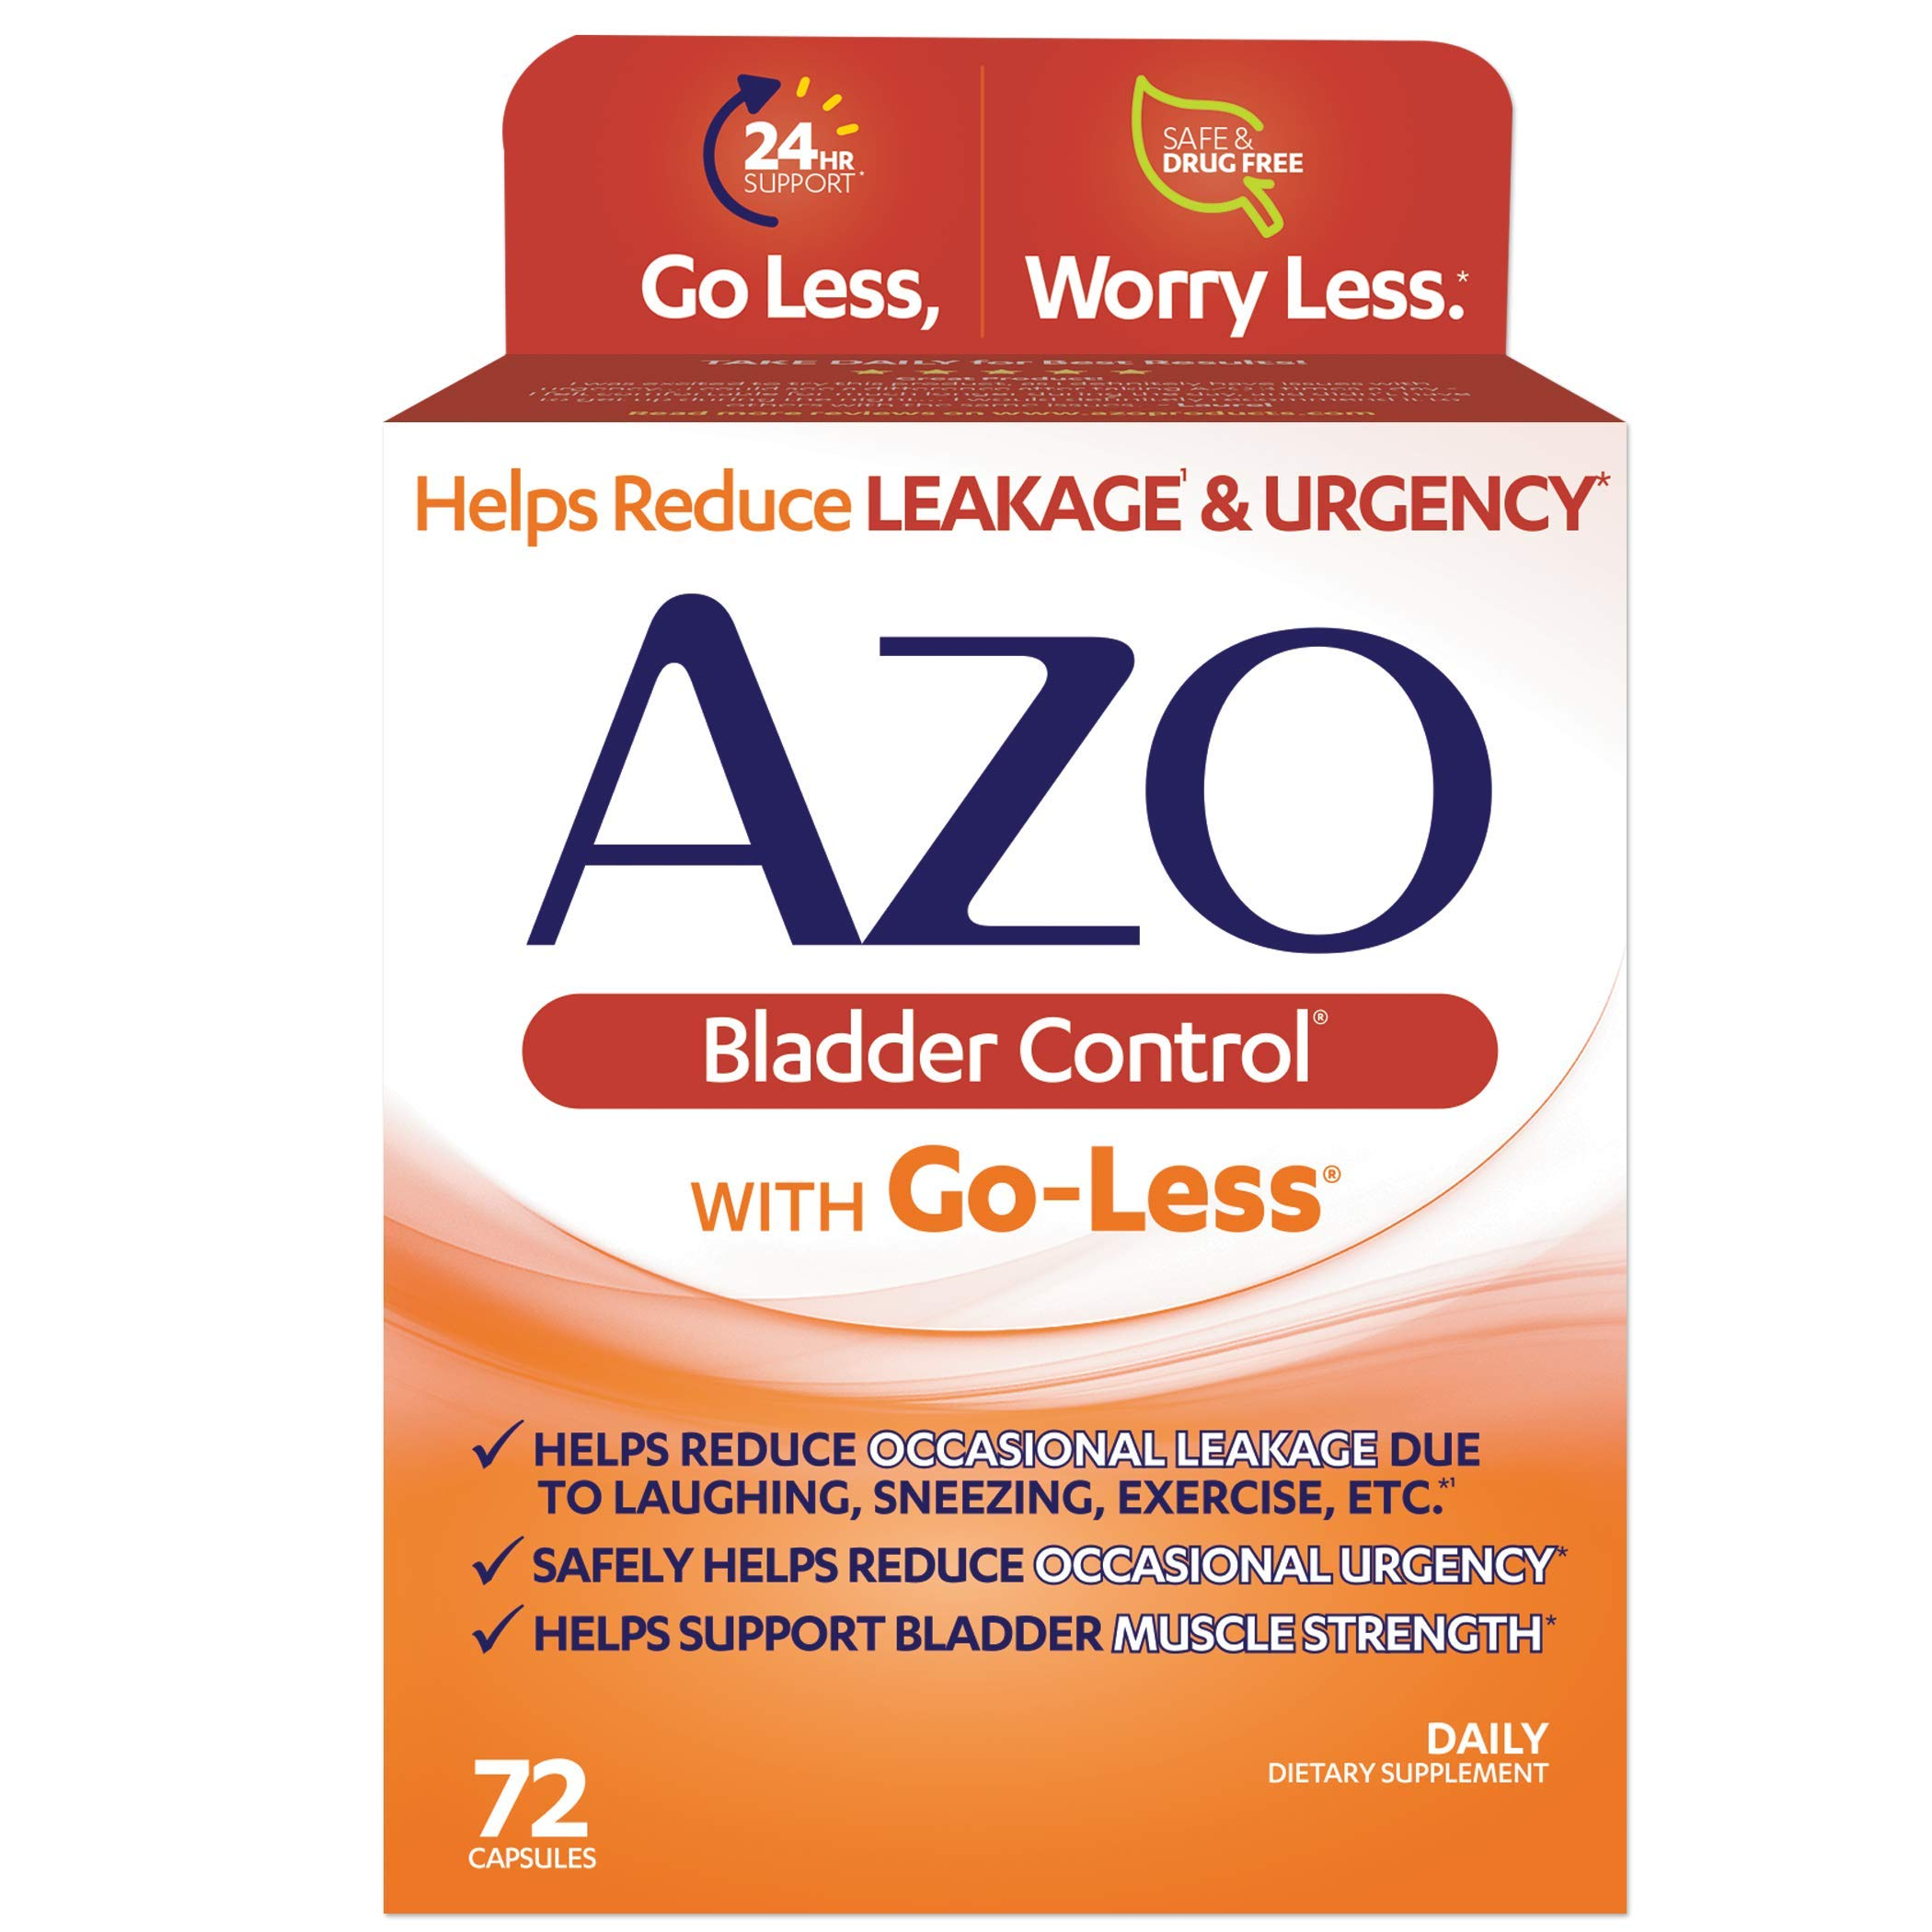 AZO Bladder Control with Go-Less Daily Supplement | Helps Reduce Occasional Urgency* | Helps reduce occasional leakage due to laughing, sneezing and exercise††† | 72 Capsules by AZO